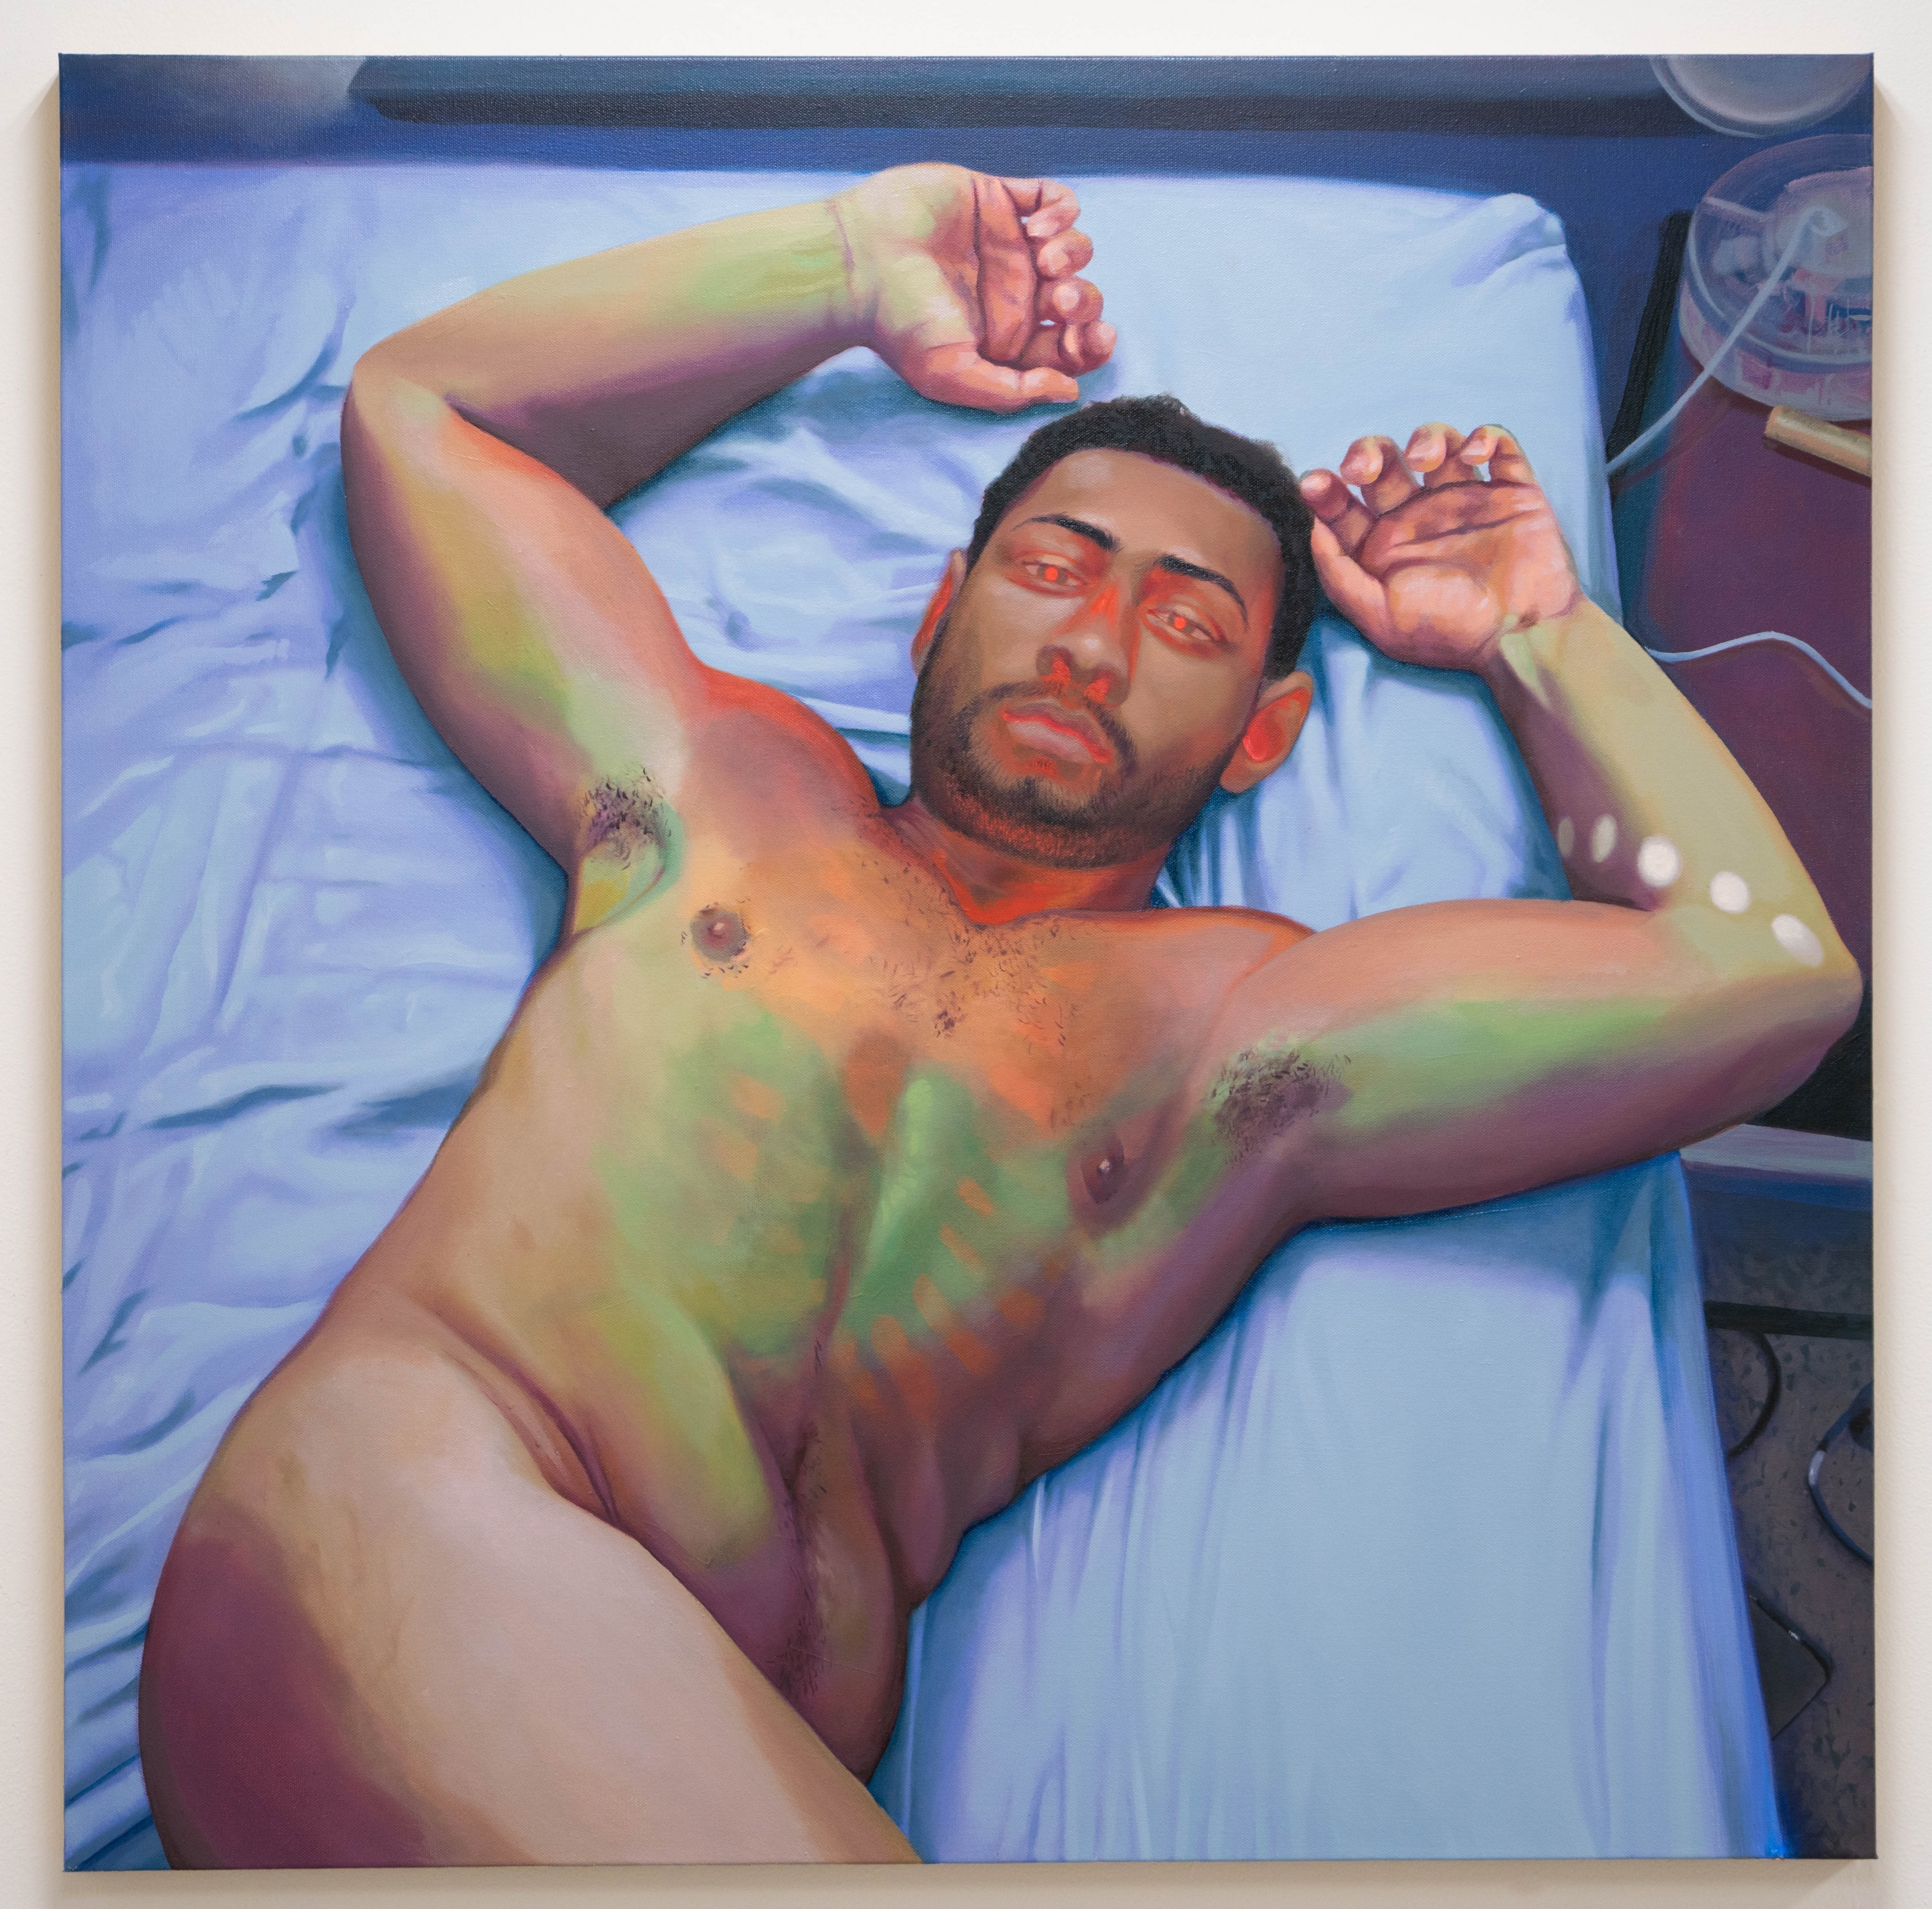 A 25 year old man relaxes, facing the viewer, in a submissive position. He is nude with the turn of his body and leg providing tasteful censorship. His eyes are glowing, inviting, looking directly at the viewer as his chest emits a green and orange glow.